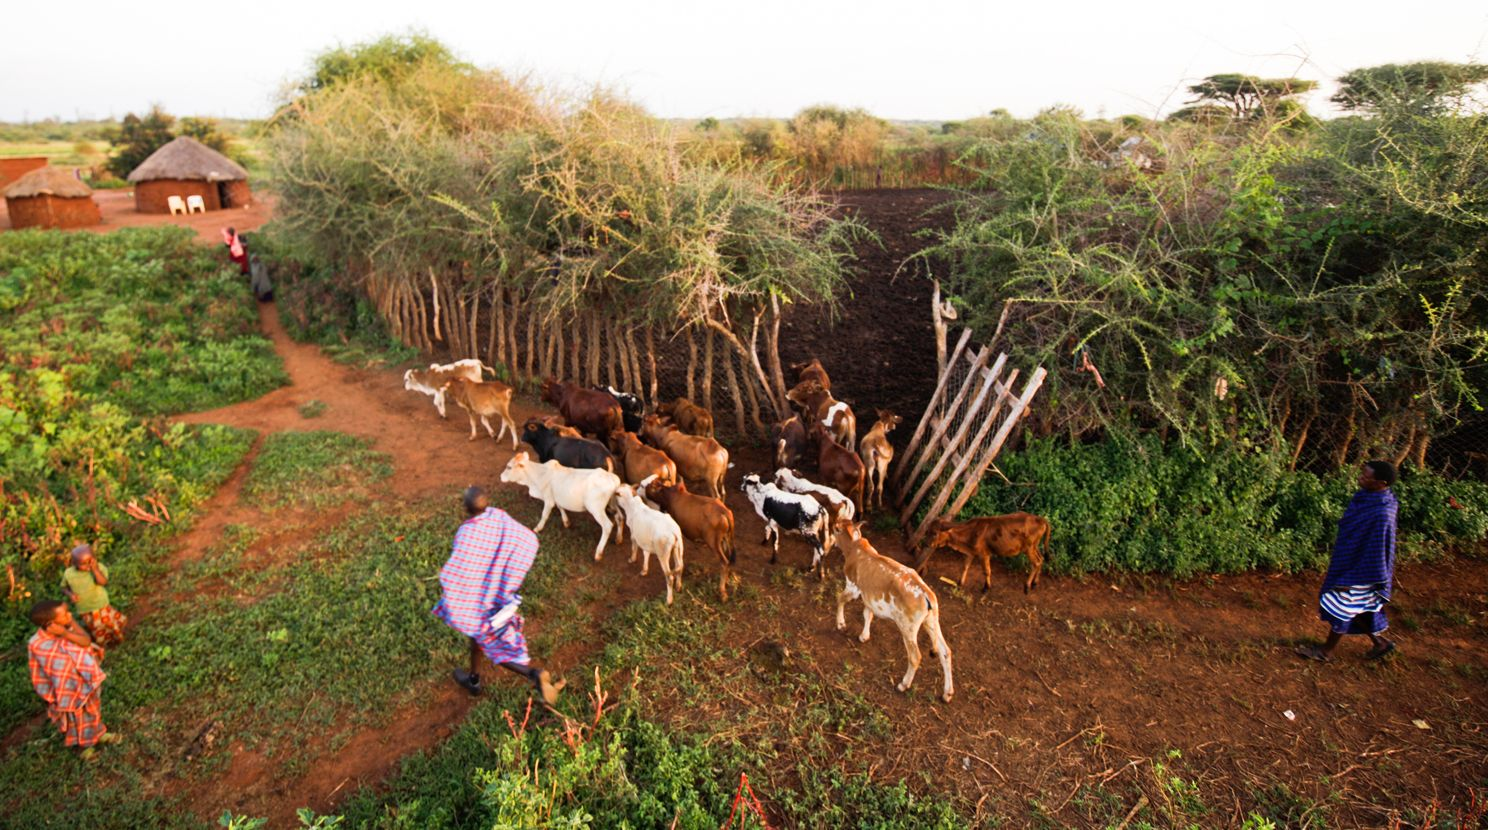 One of APW's Living Walls protects livestock from predators in northern Tanzania.